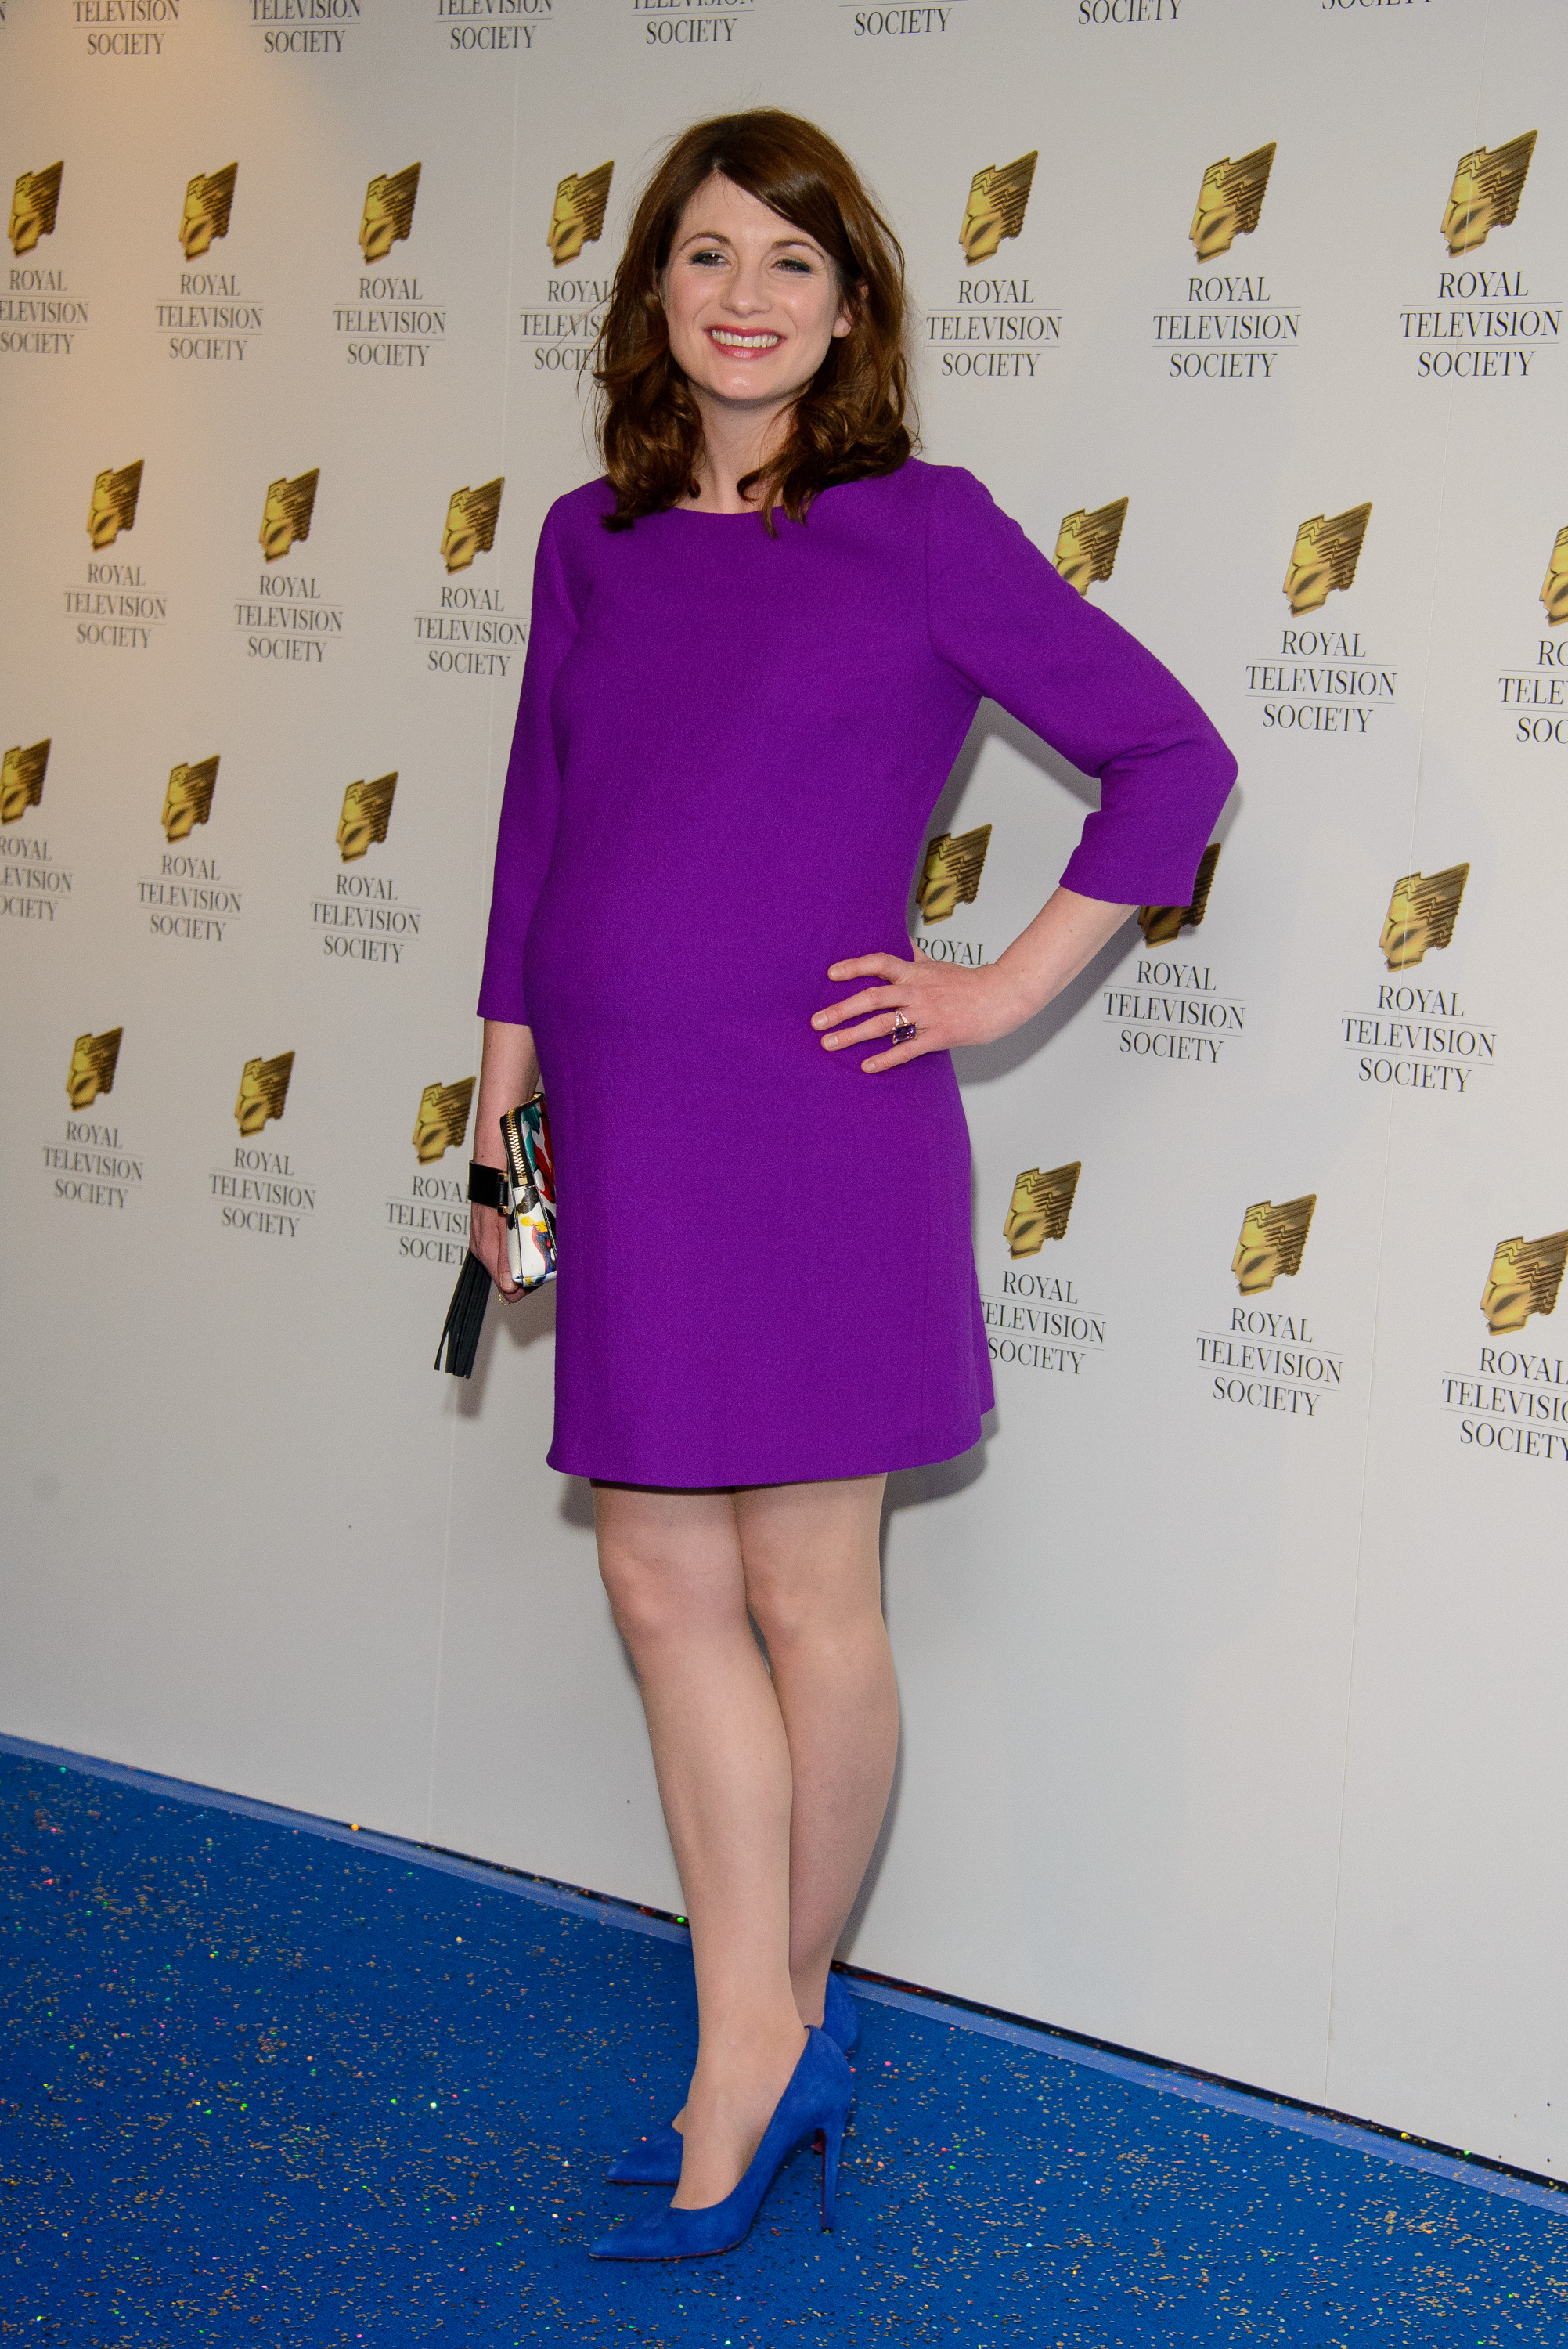 Royal Television Society Programme Awards - Arrivals                                    Featuring: Jodie Whittaker                  Where: London, United Kingdom                  When: 17 Mar 2015                  Credit: Joe/WENN.com